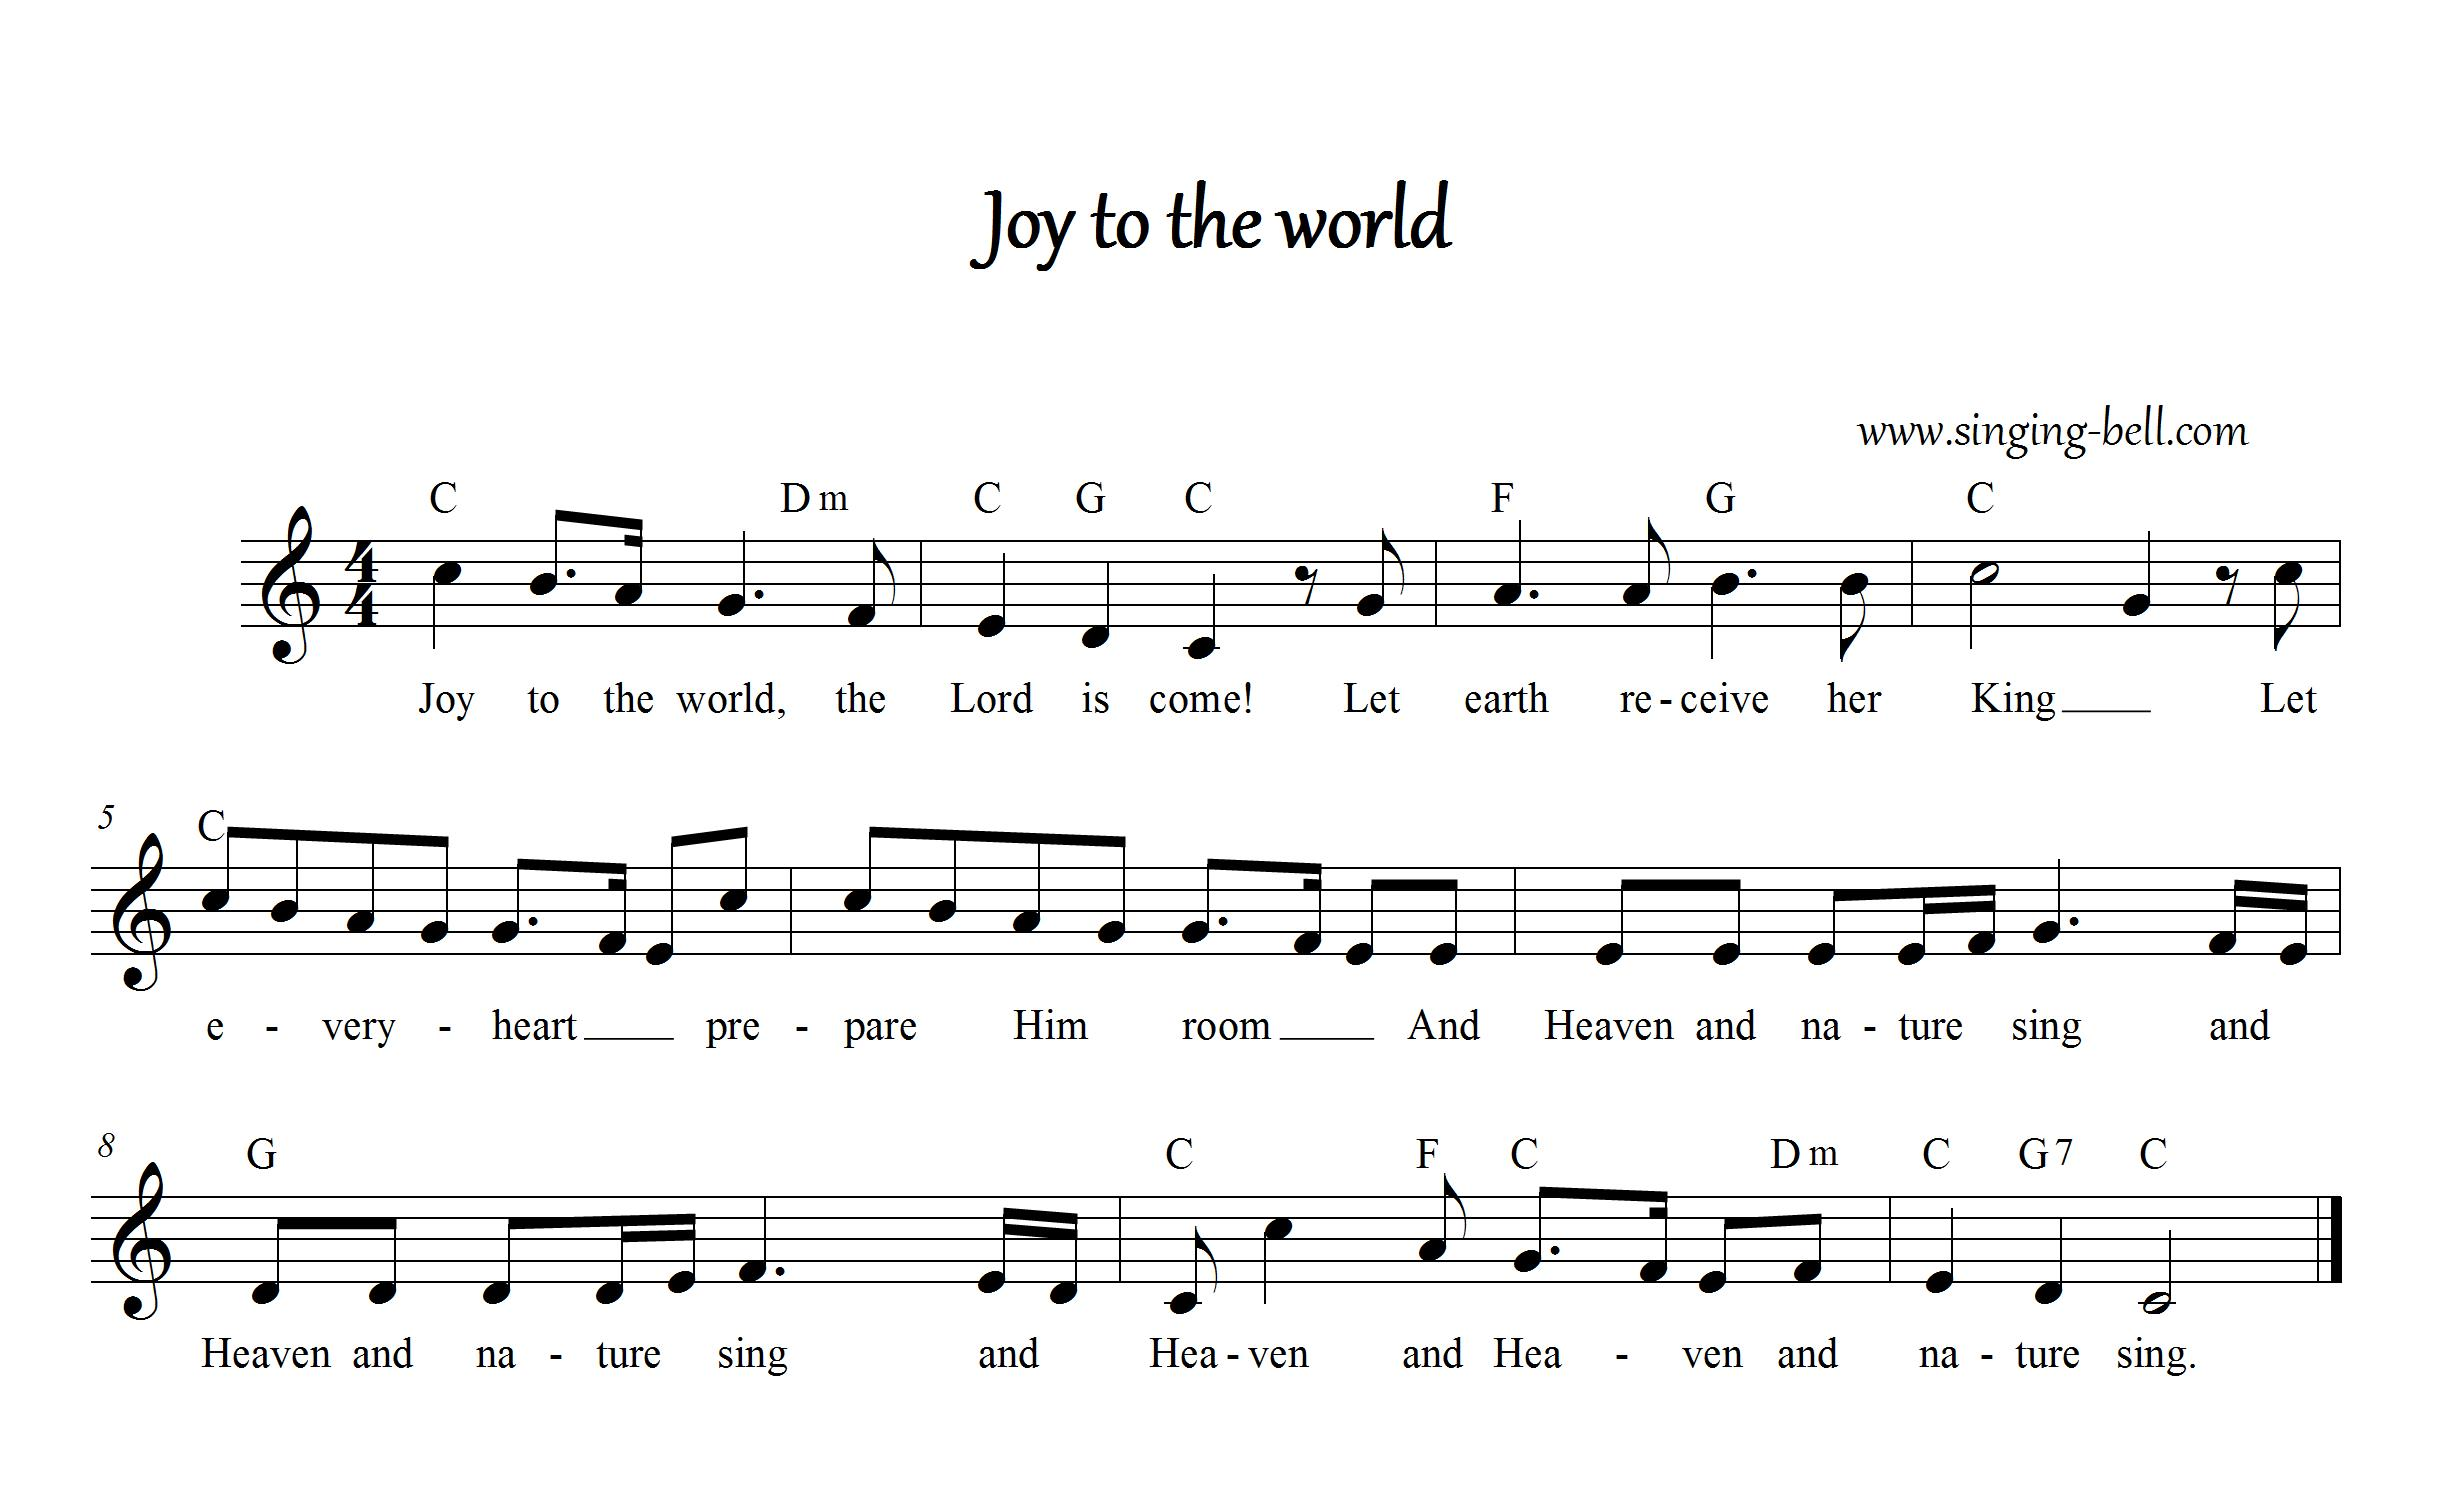 Free Christmas Carols u0026gt; Joy to the world - free mp3 audio download